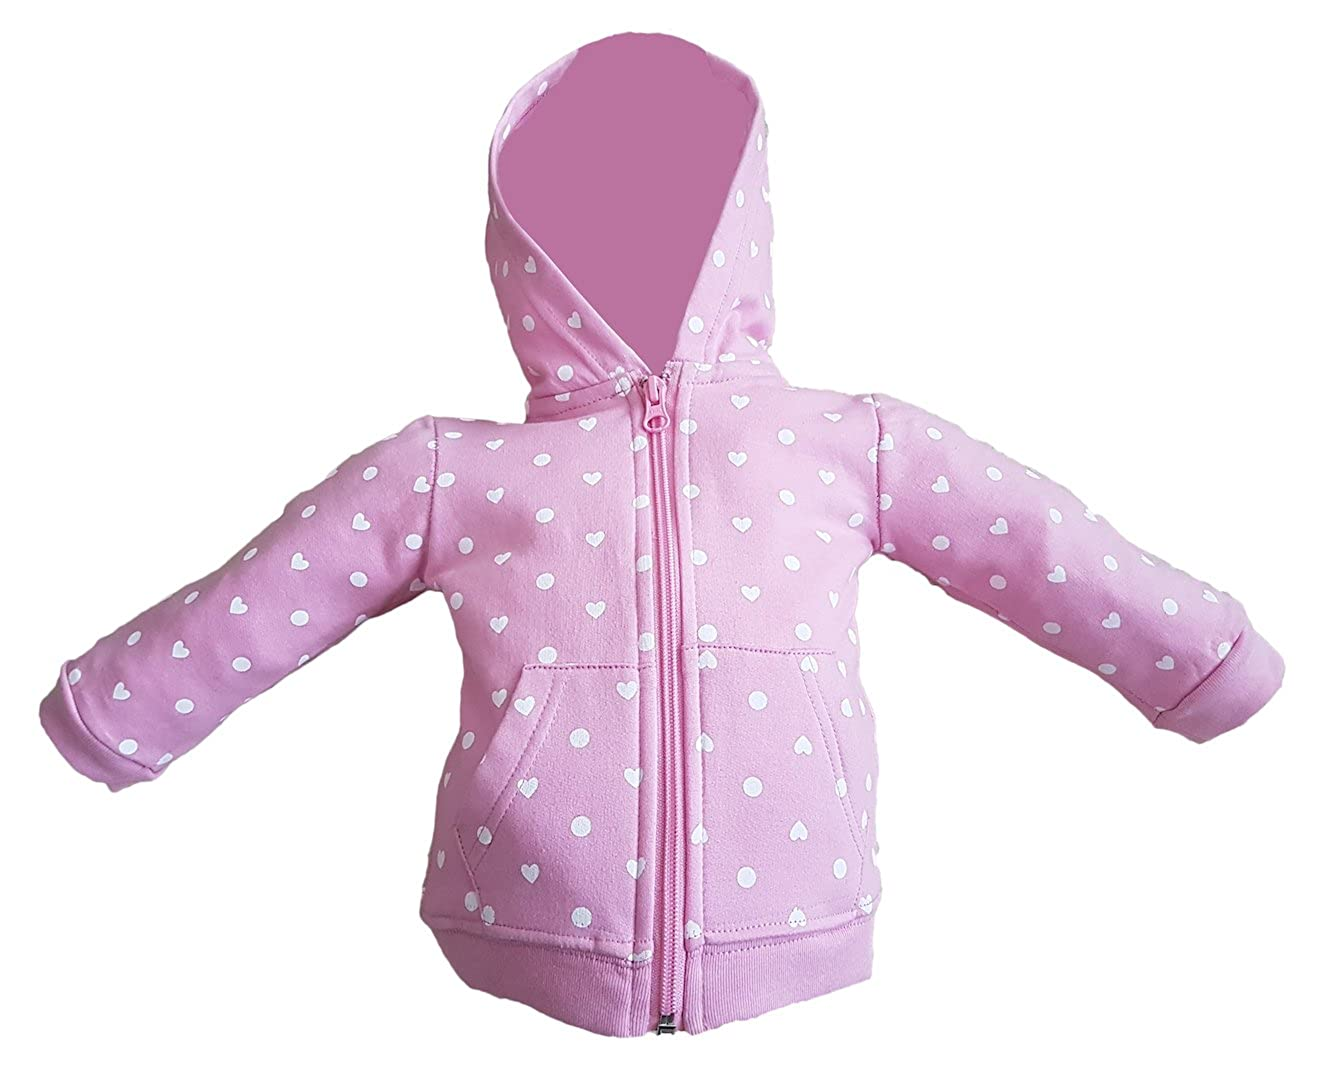 Girls Pink Hoody with Hearts and Circles. Made from 100% Cotton and Perfect for Everyday